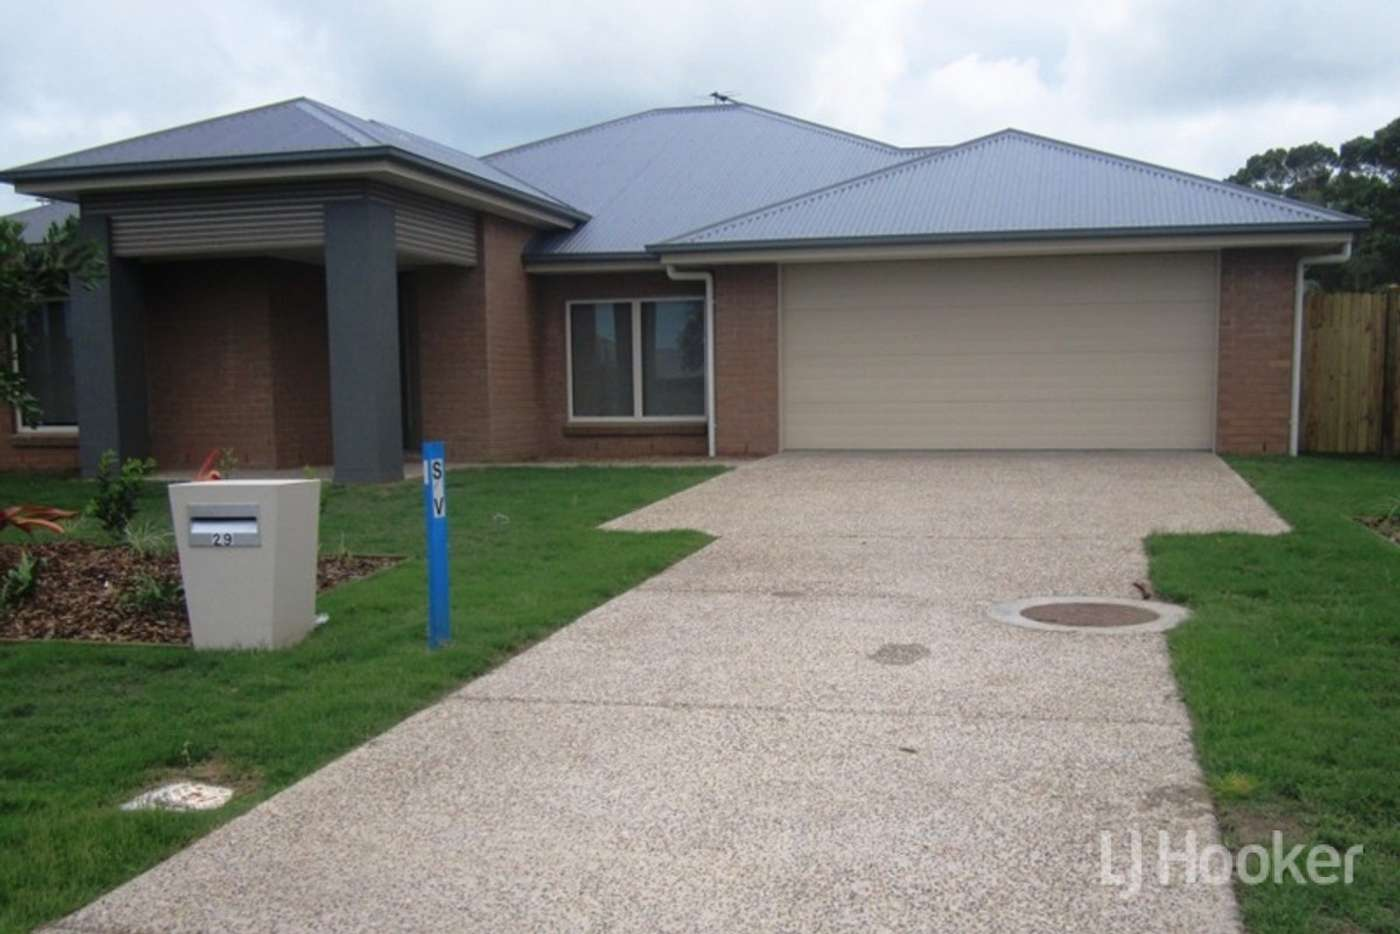 Main view of Homely house listing, 29 Grice Crescent, Ningi QLD 4511